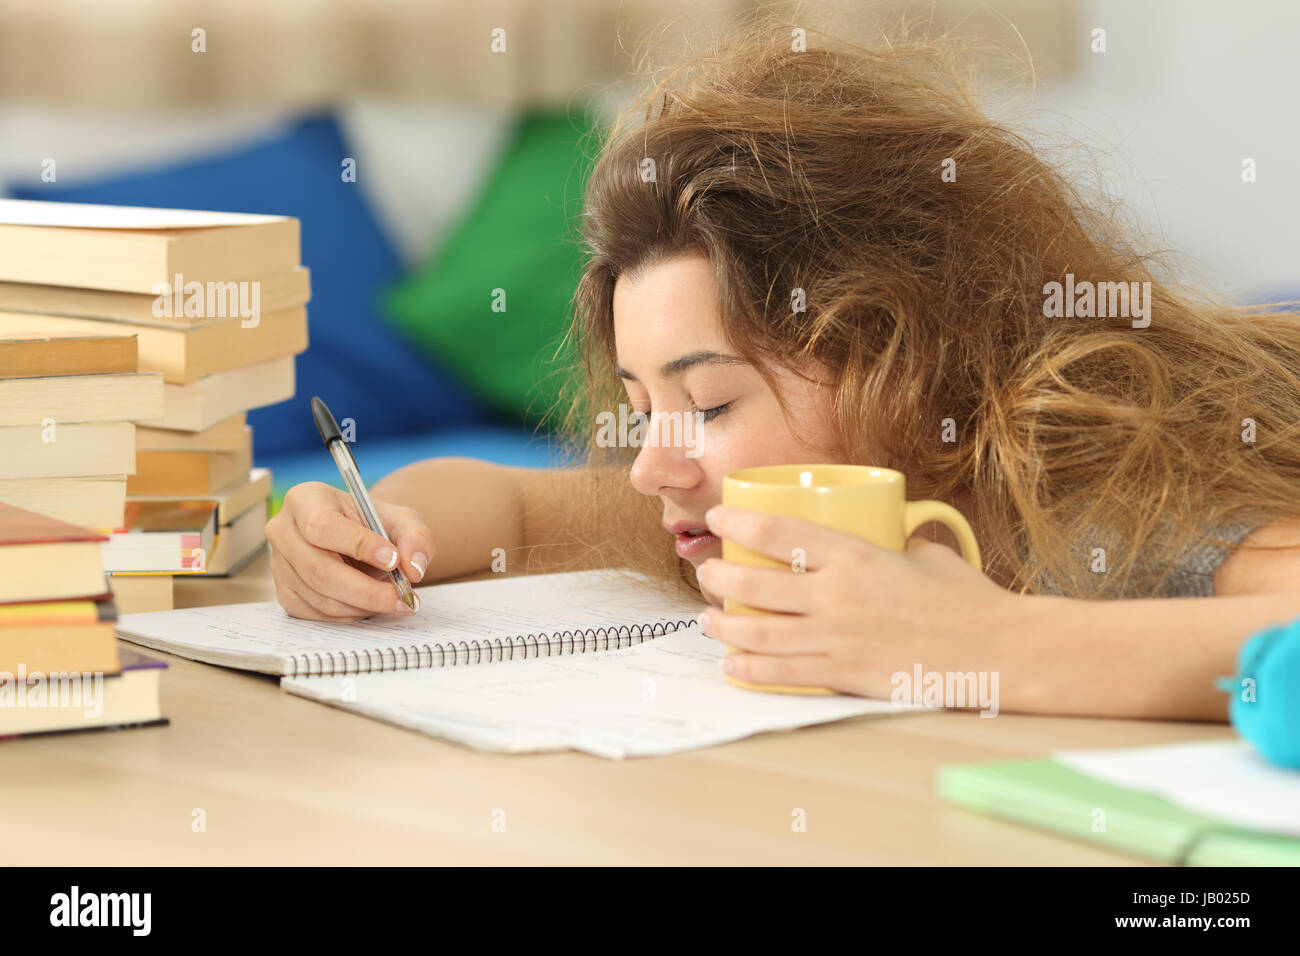 Tired and sleepy student with tousled hair trying to write notes on a desk in her room in a house indoor - Stock Image